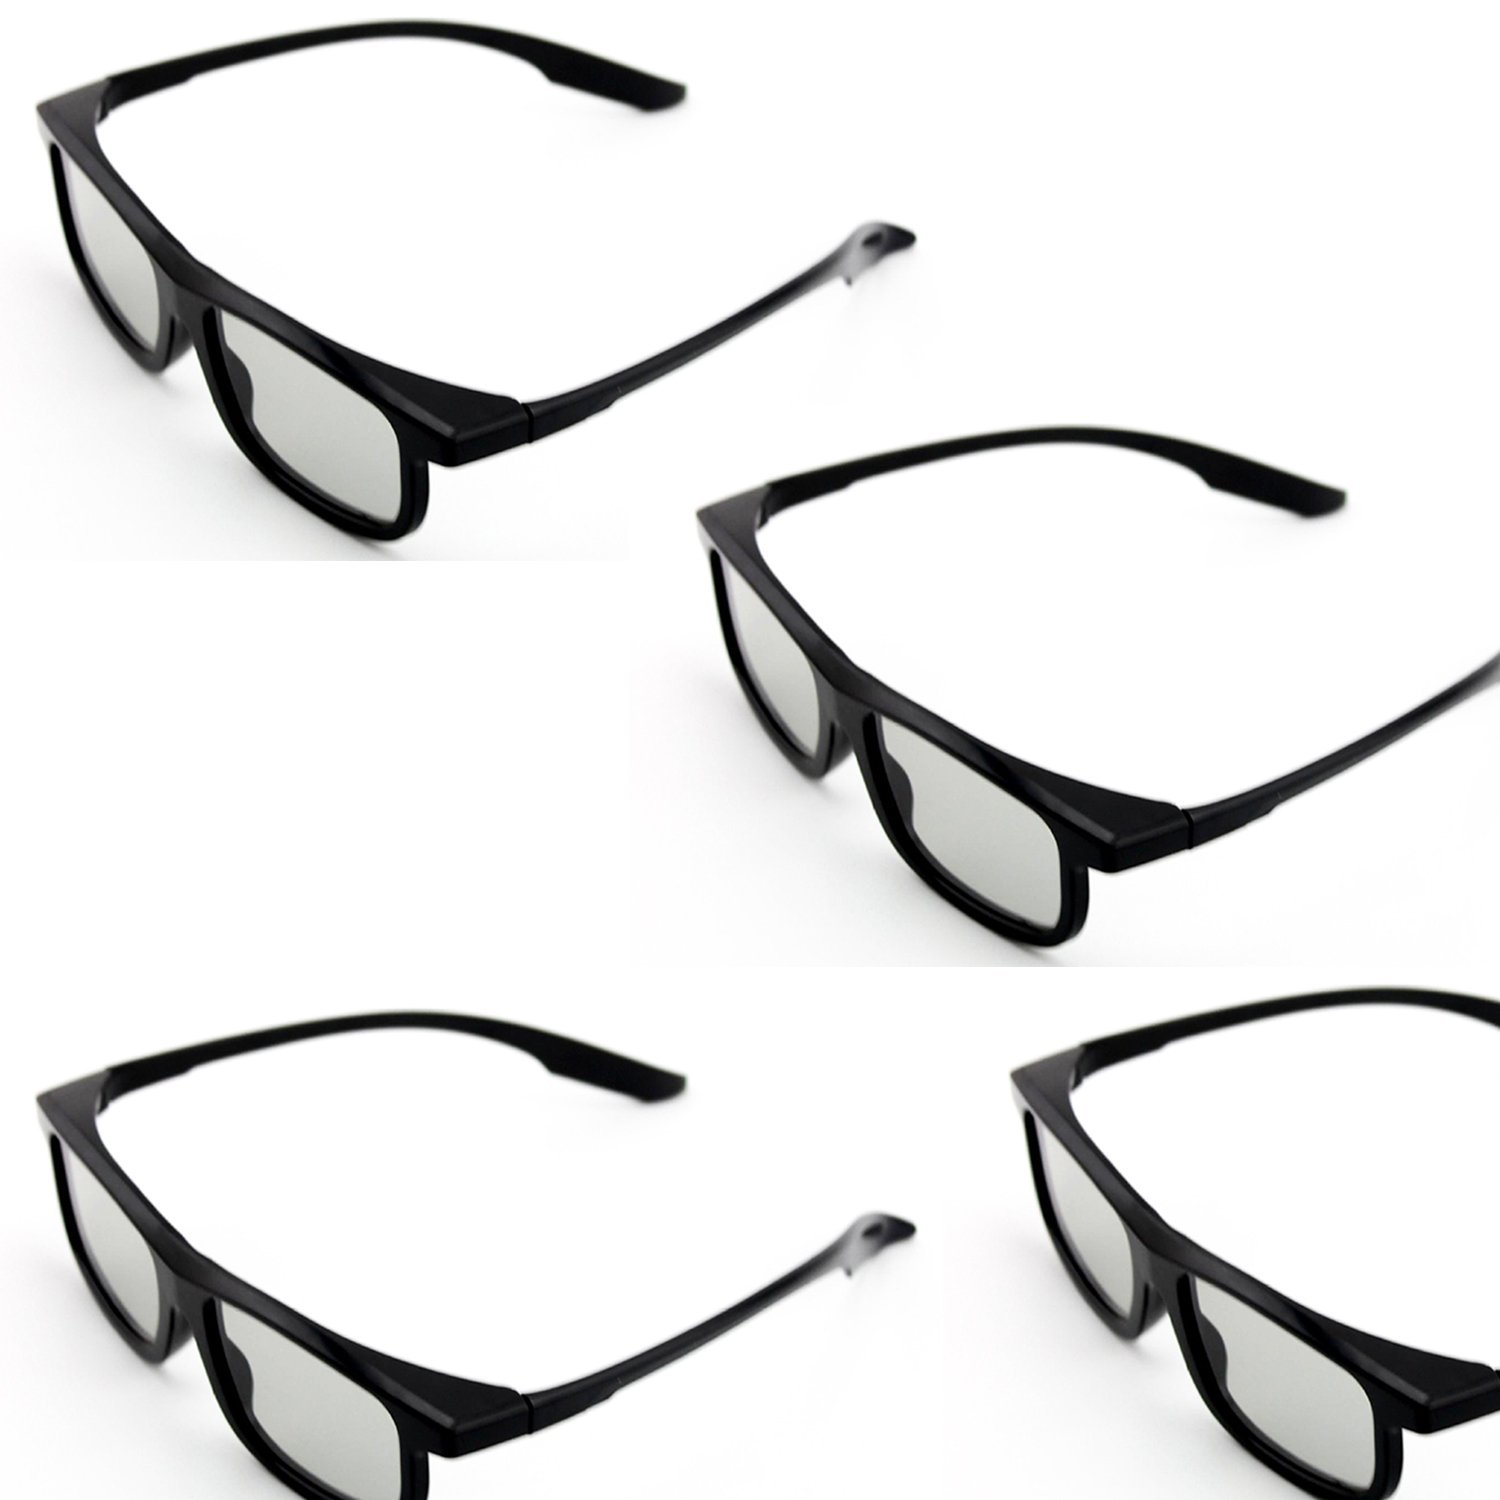 Goswot 4 Pairs of Passive Circular Polarized 3D Glasses for Real-D Theaters/ Passive 3D TVs